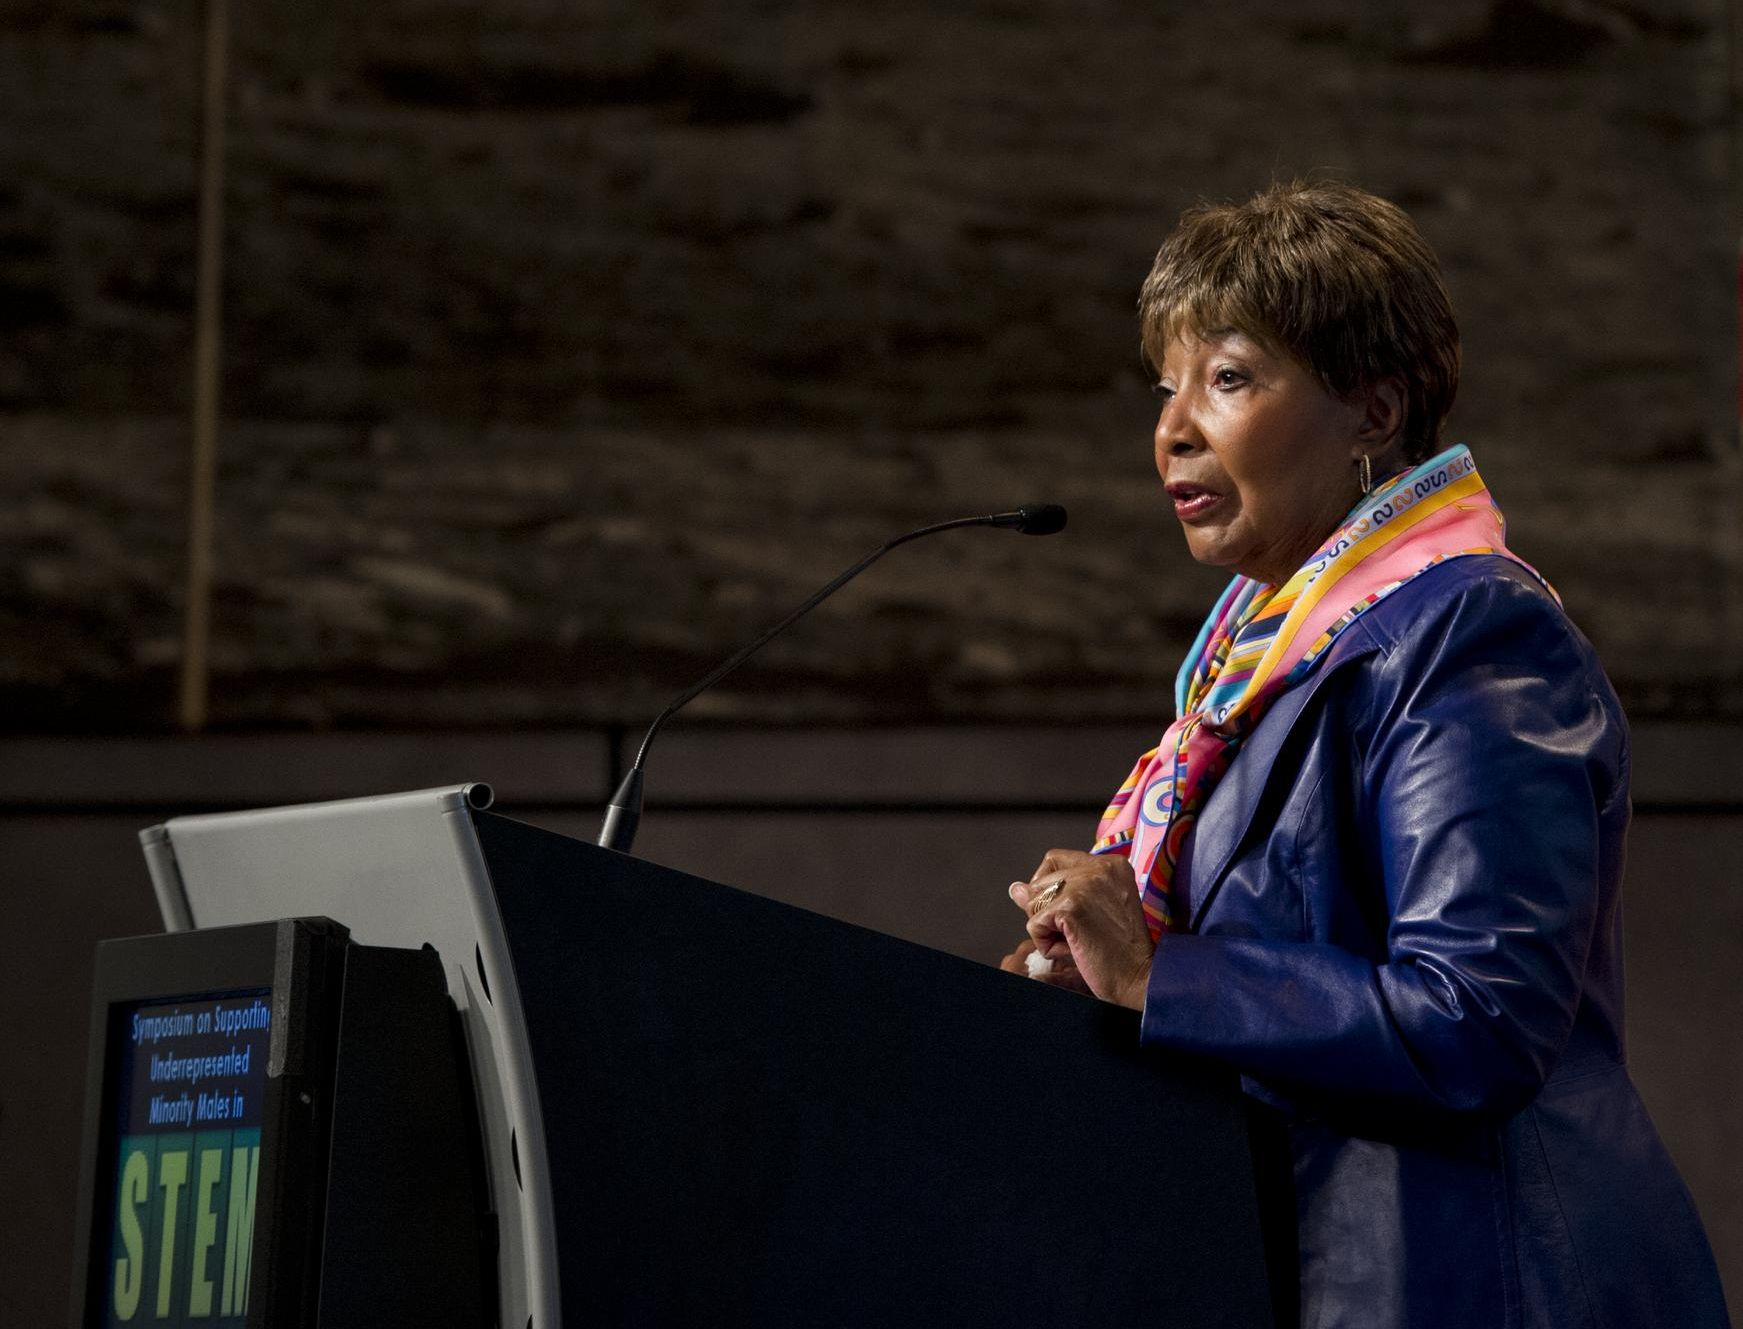 The chairwoman of the House science committee, Eddie Bernice Johnson, is skeptical about the administration's Moon plans.